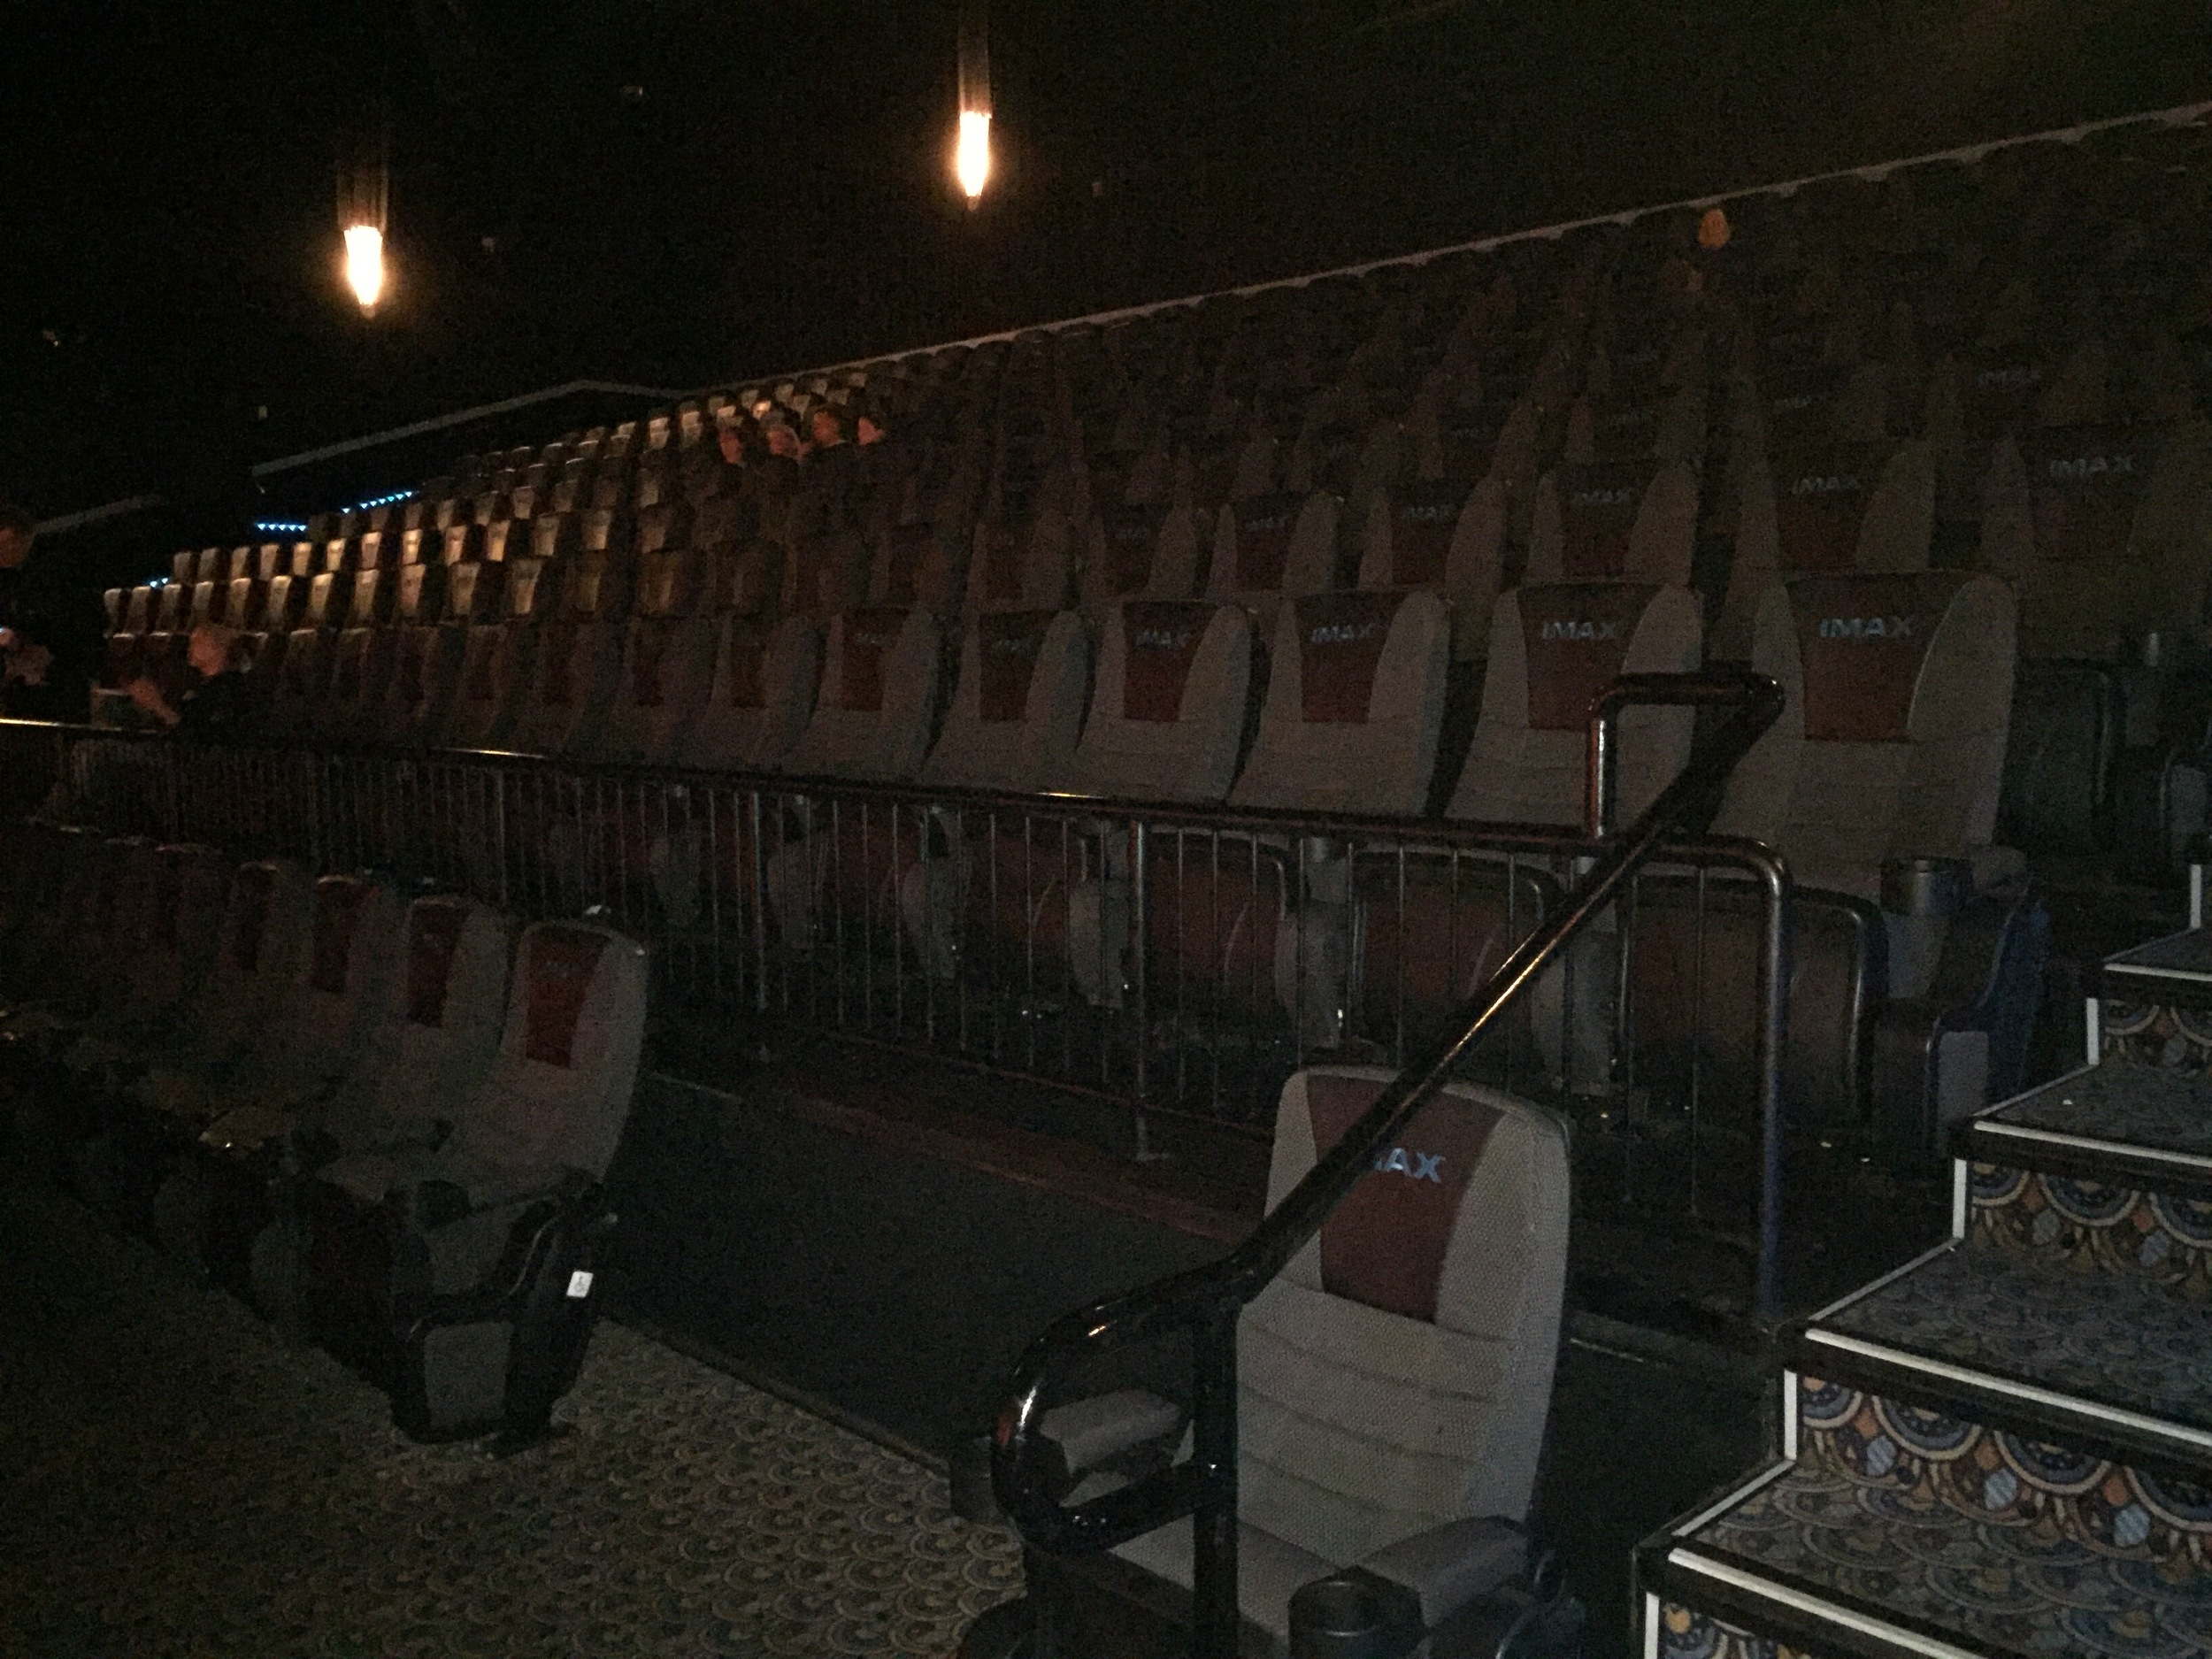 This was our IMAX theater for TMNT: Out of the Shadows. Granted it was a Sunday night, but still it's an opening weekend for a major summer blockbuster and there might have been 10 people in the theater total when the movie started. Yikes.